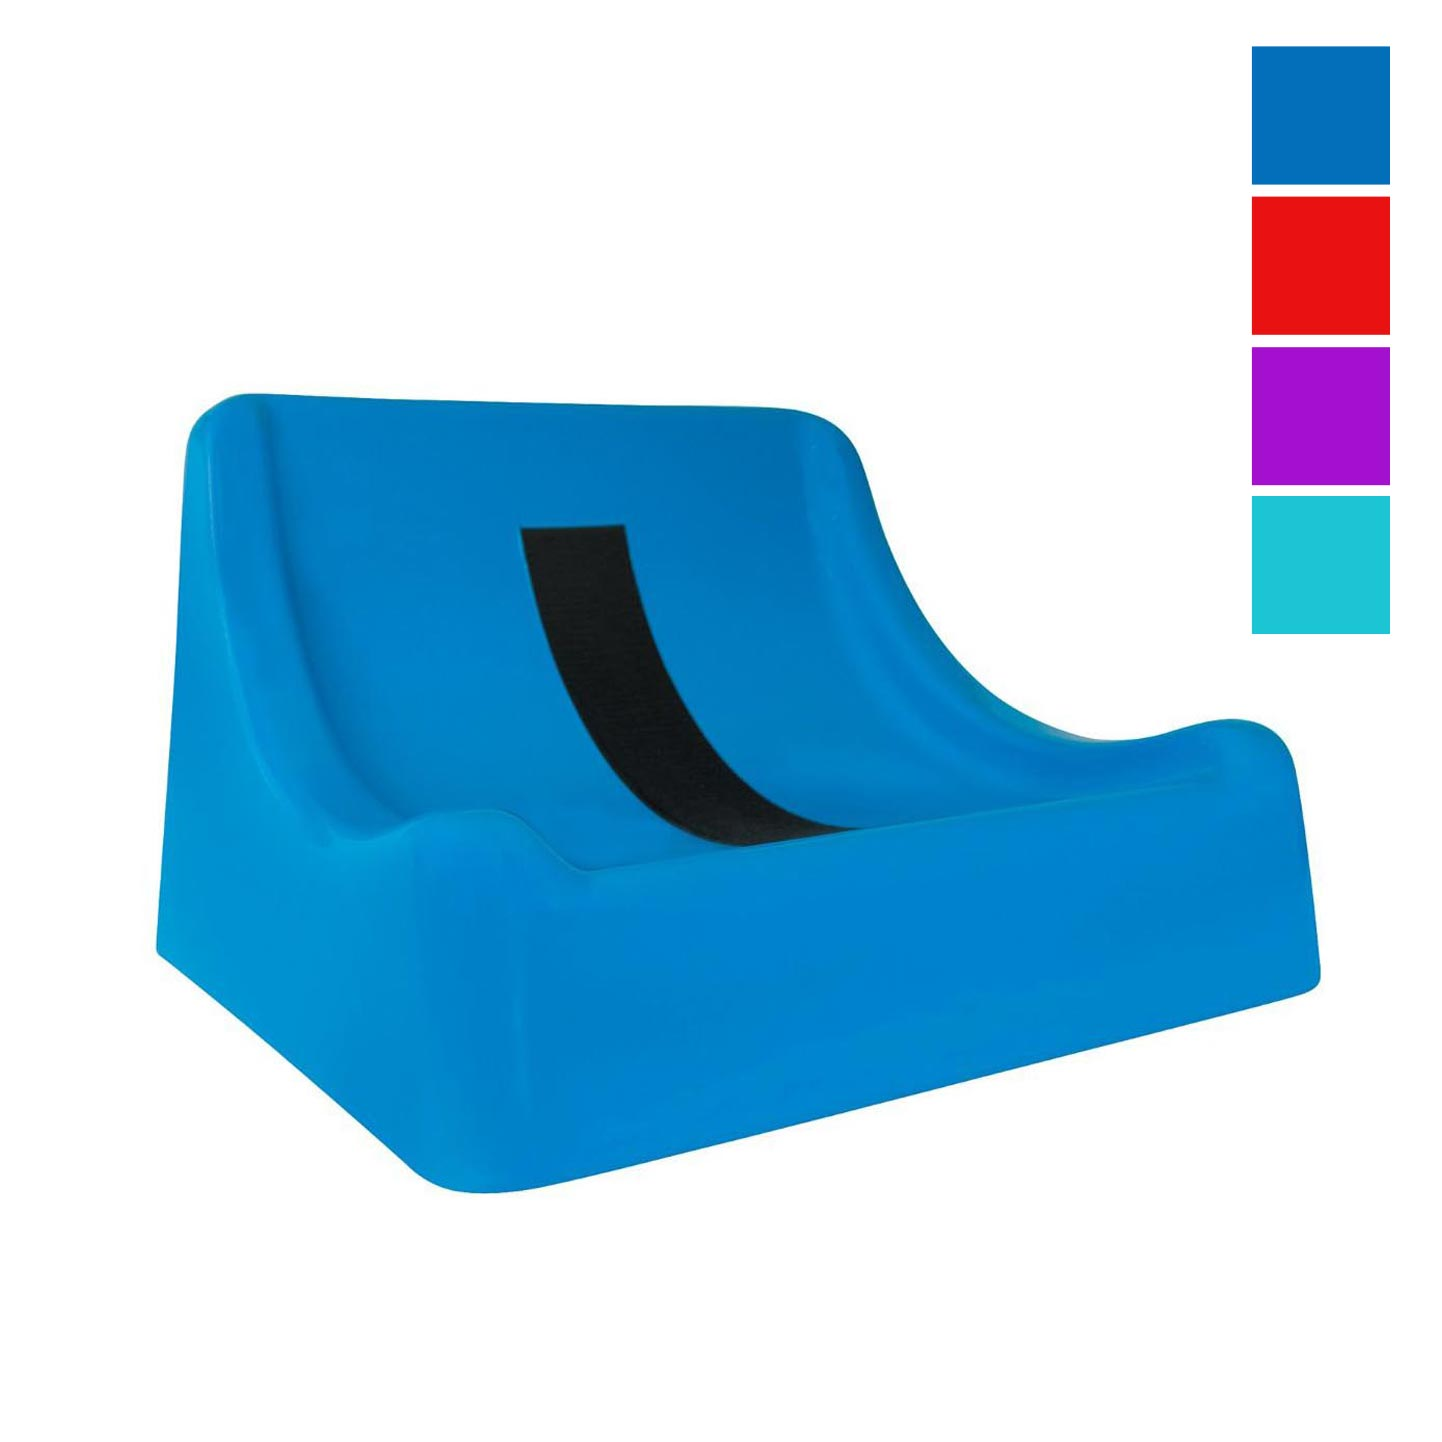 Tumble Forms Floor Sitter Wedge For Feeder Seat | Performance Health